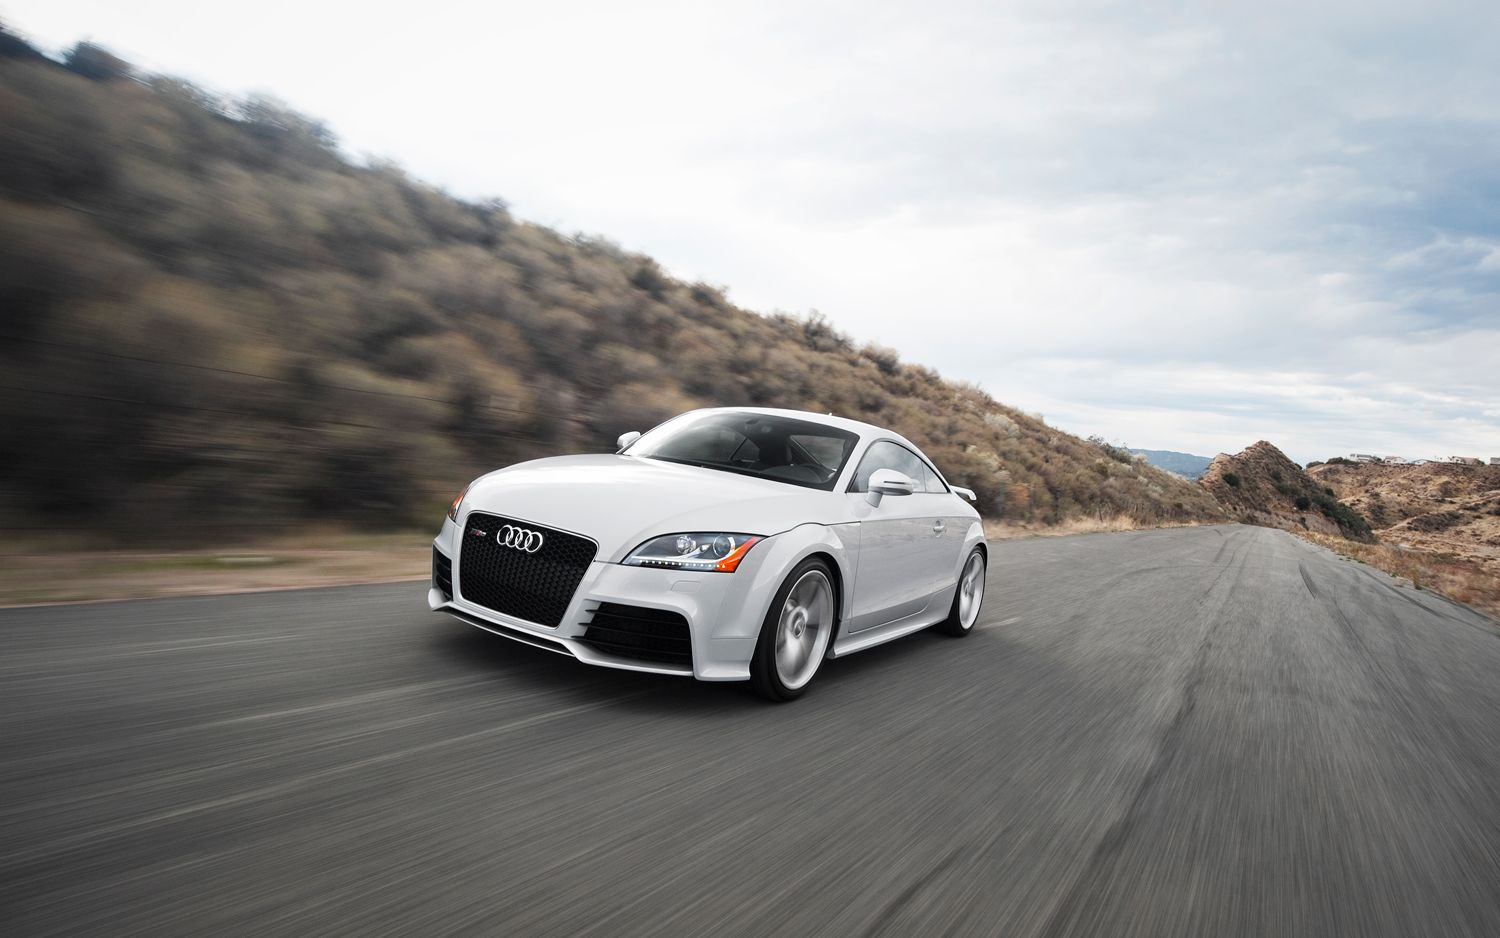 hight resolution of ignition episode 4 2012 audi tt rs tested motor trend youtube channel